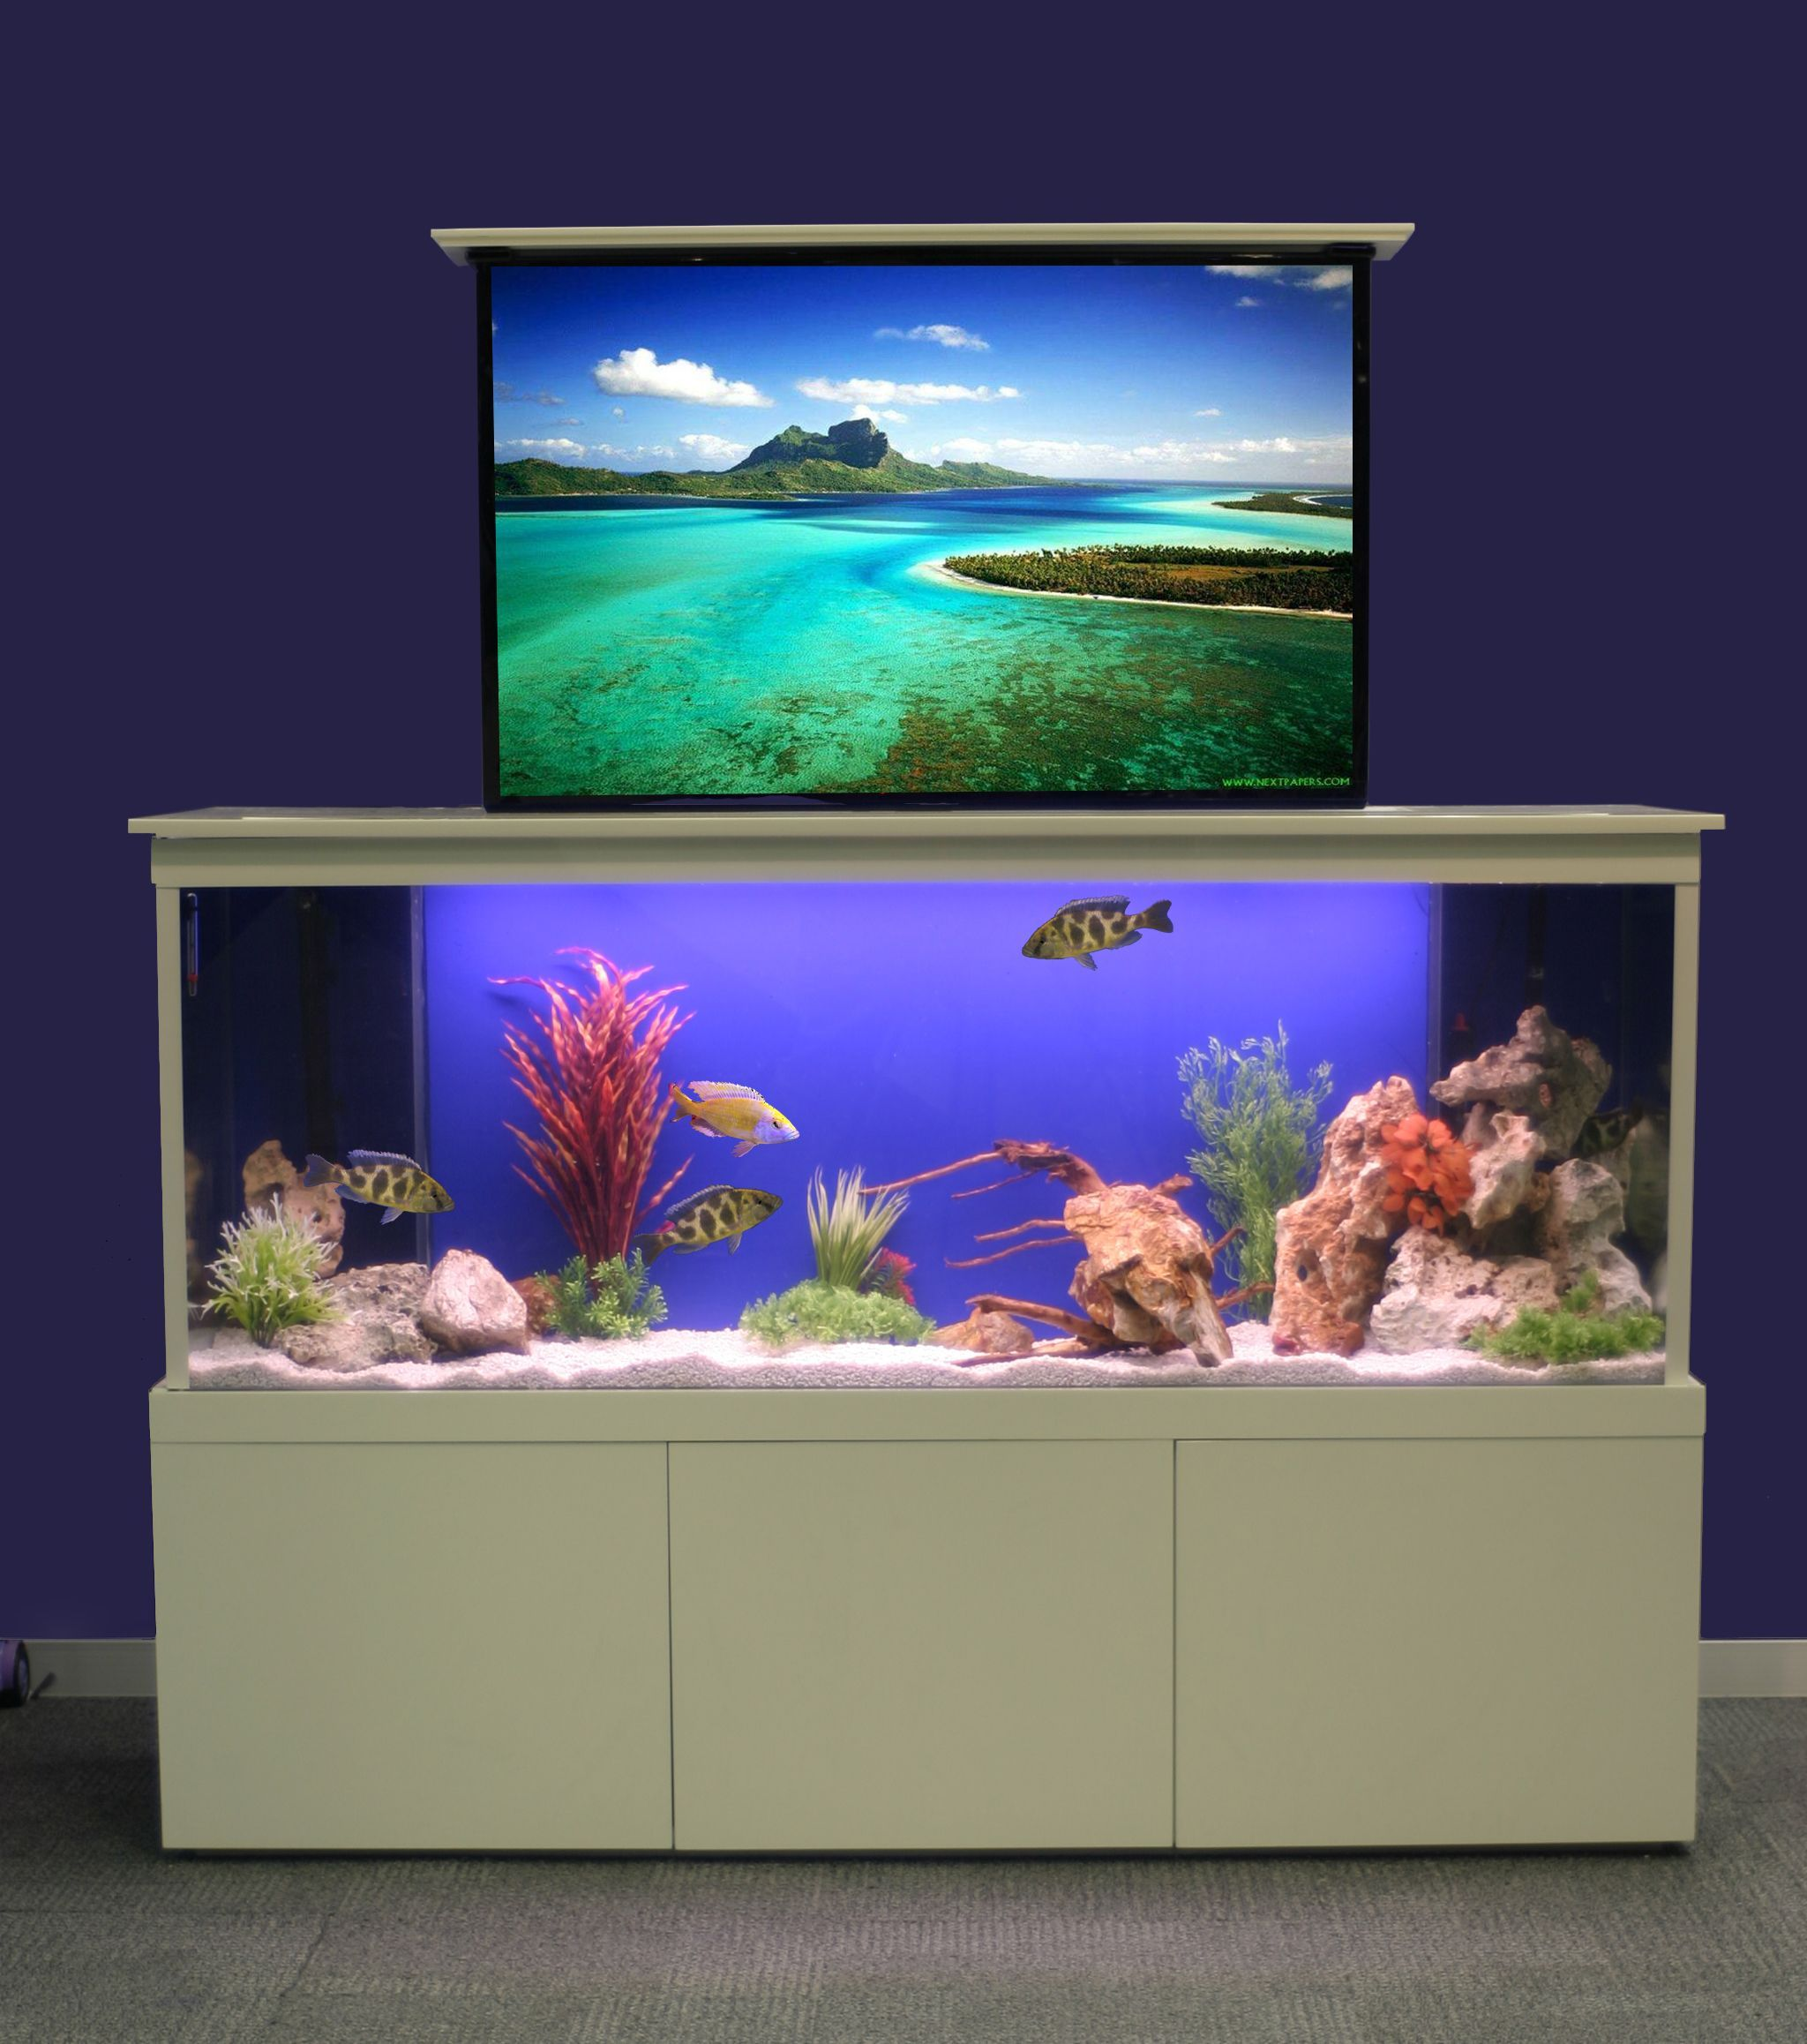 How To Design Aquarium In Home Photo Ideas Pinterest Aquarium